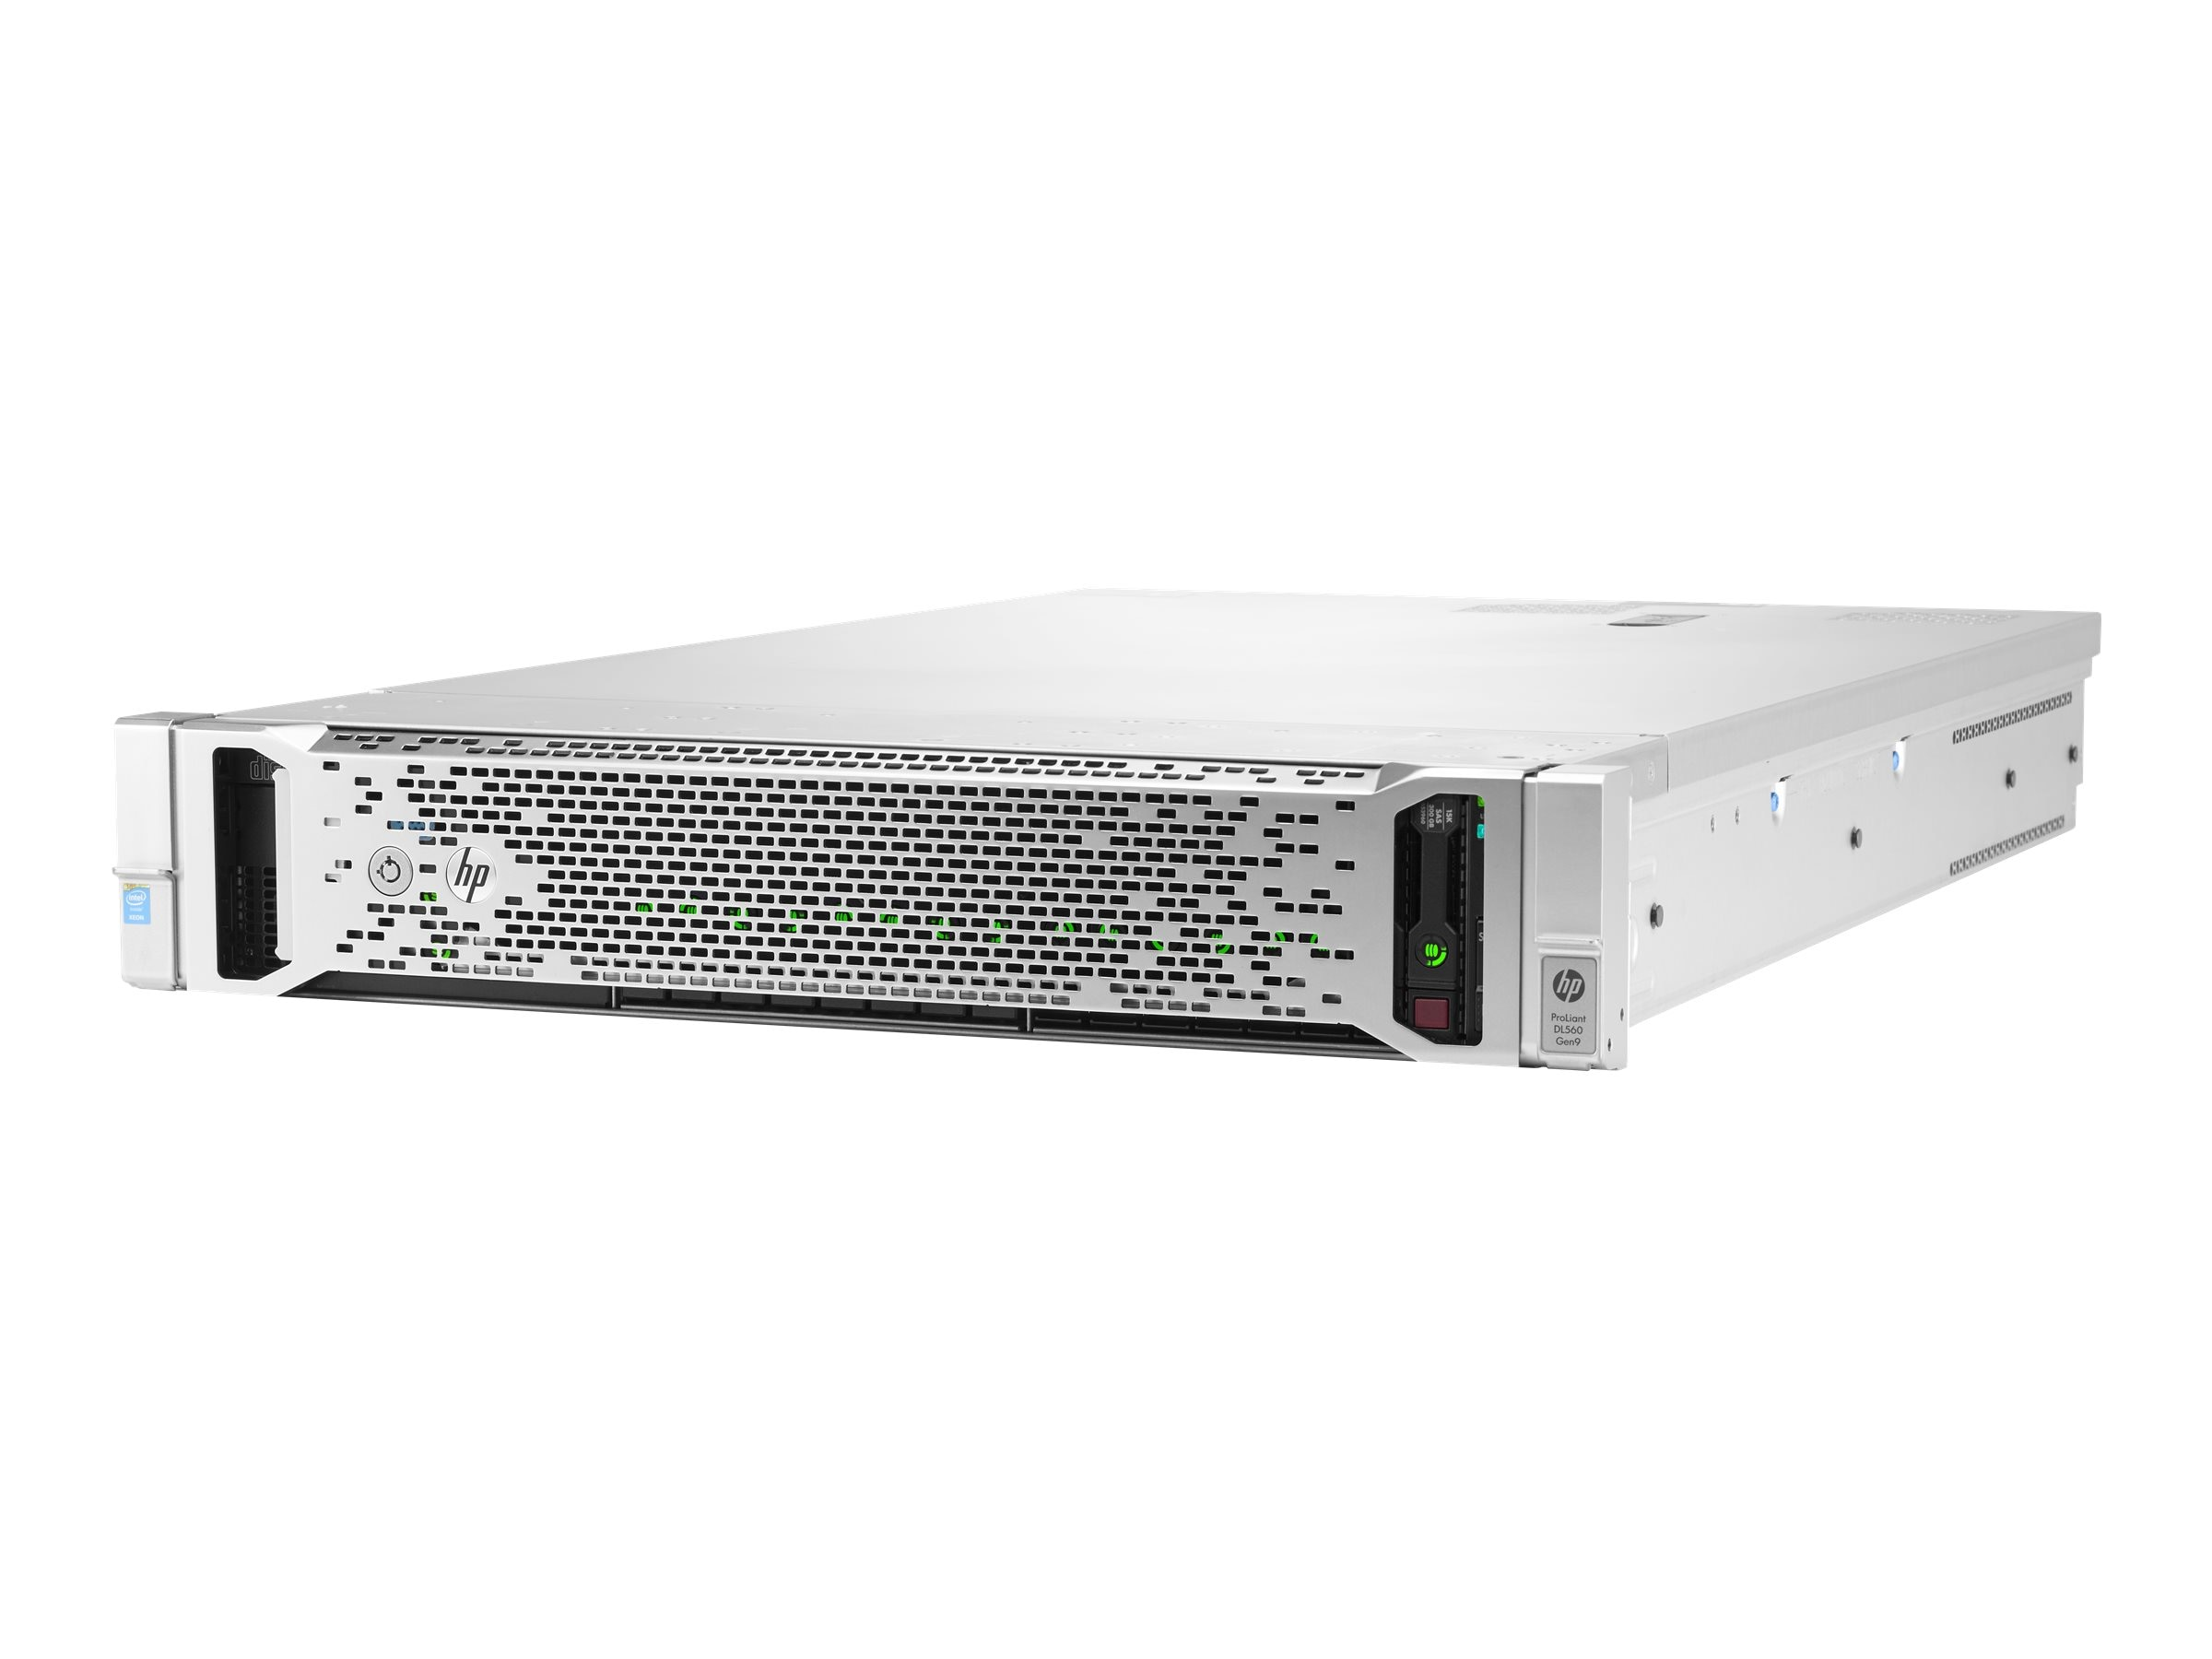 HPE ProLiant DL560 Gen9 Intel 2.1GHz Xeon